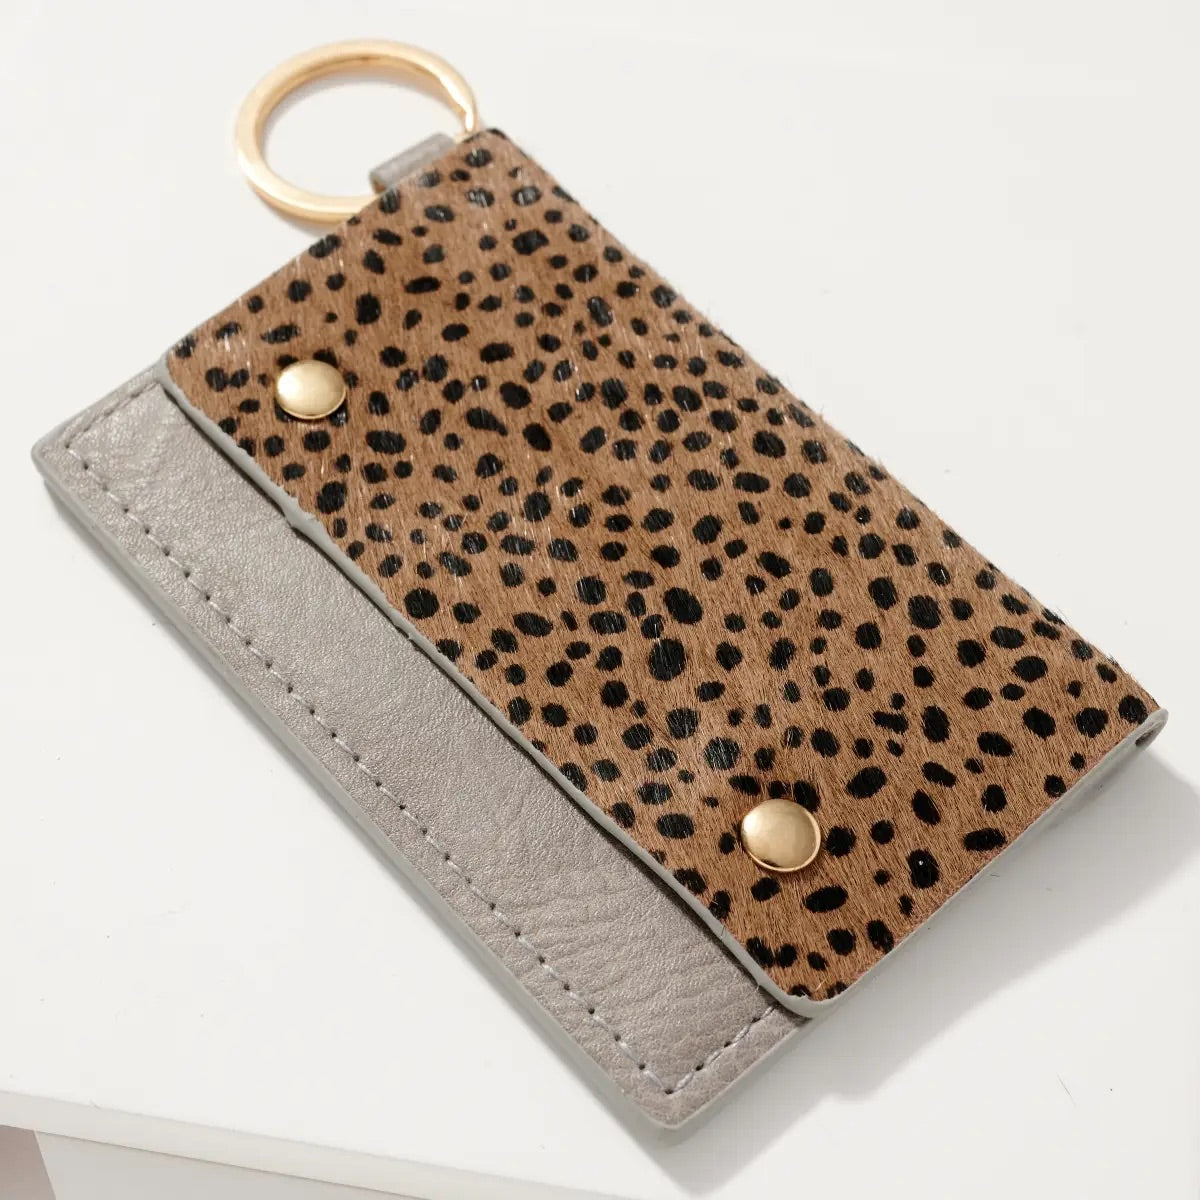 Animal Print Leather ID Pocket Key Chain Wallet - Cheetah